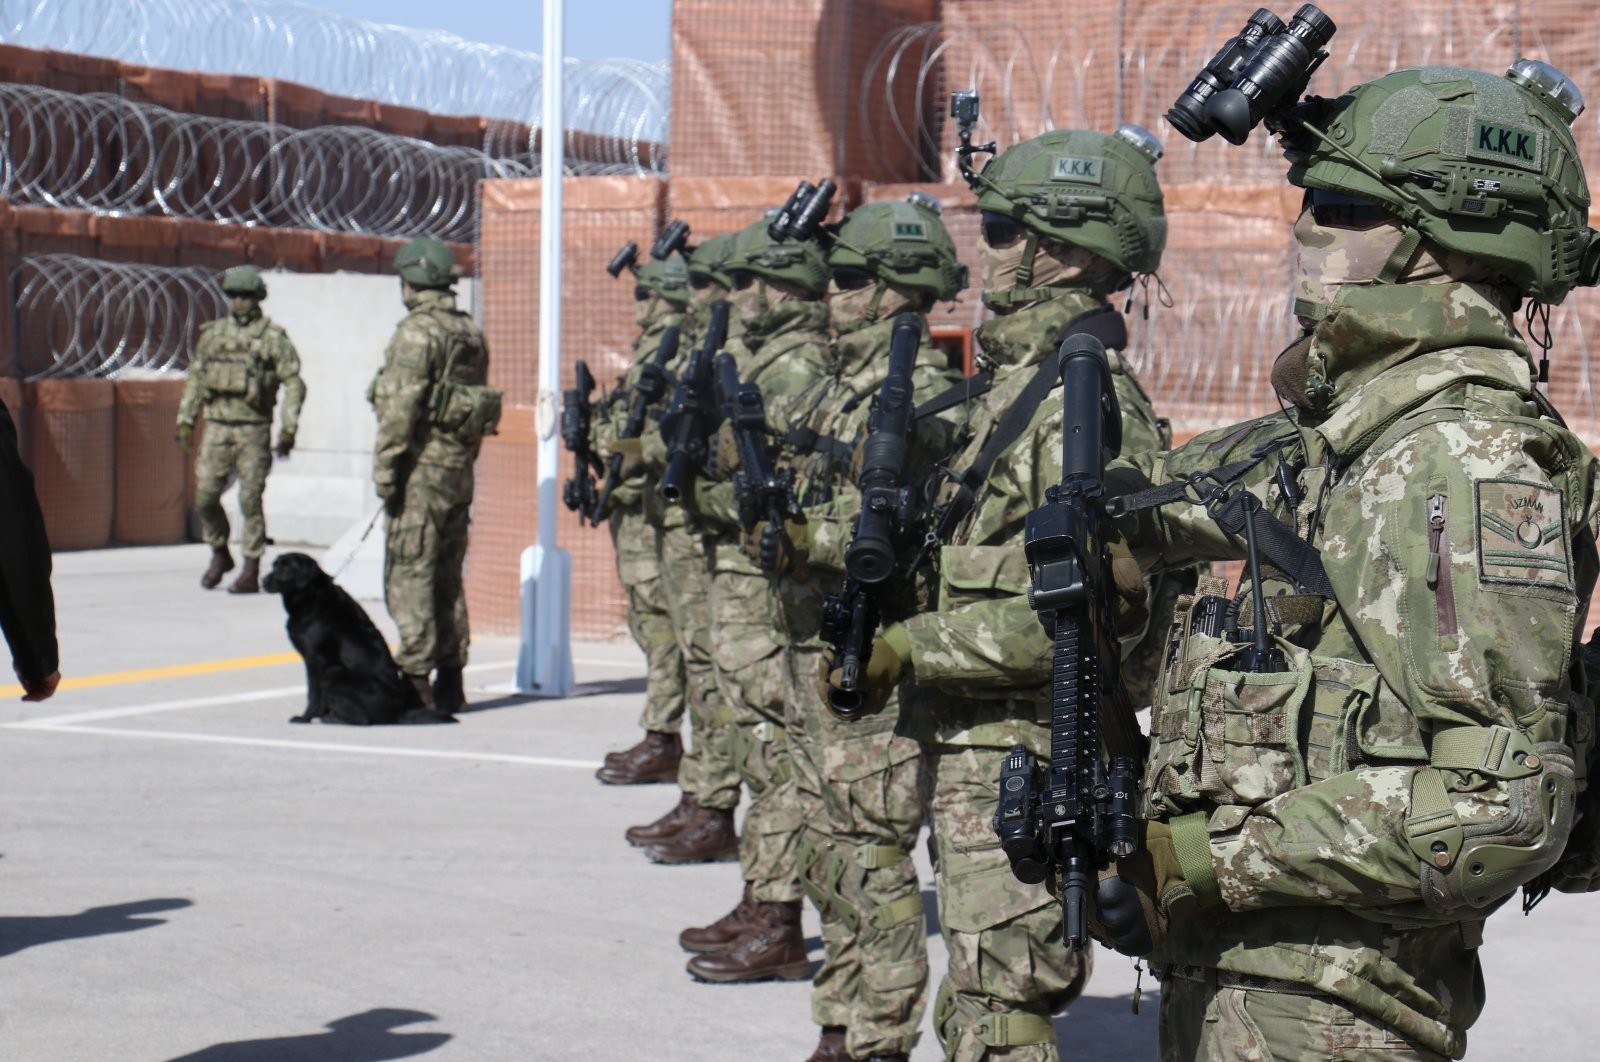 Turkish soldiers stand during an event introducing the public to new equipment added to the Turkish military's inventory in Ankara, Turkey, April 7, 2021. (IHA File Photo)